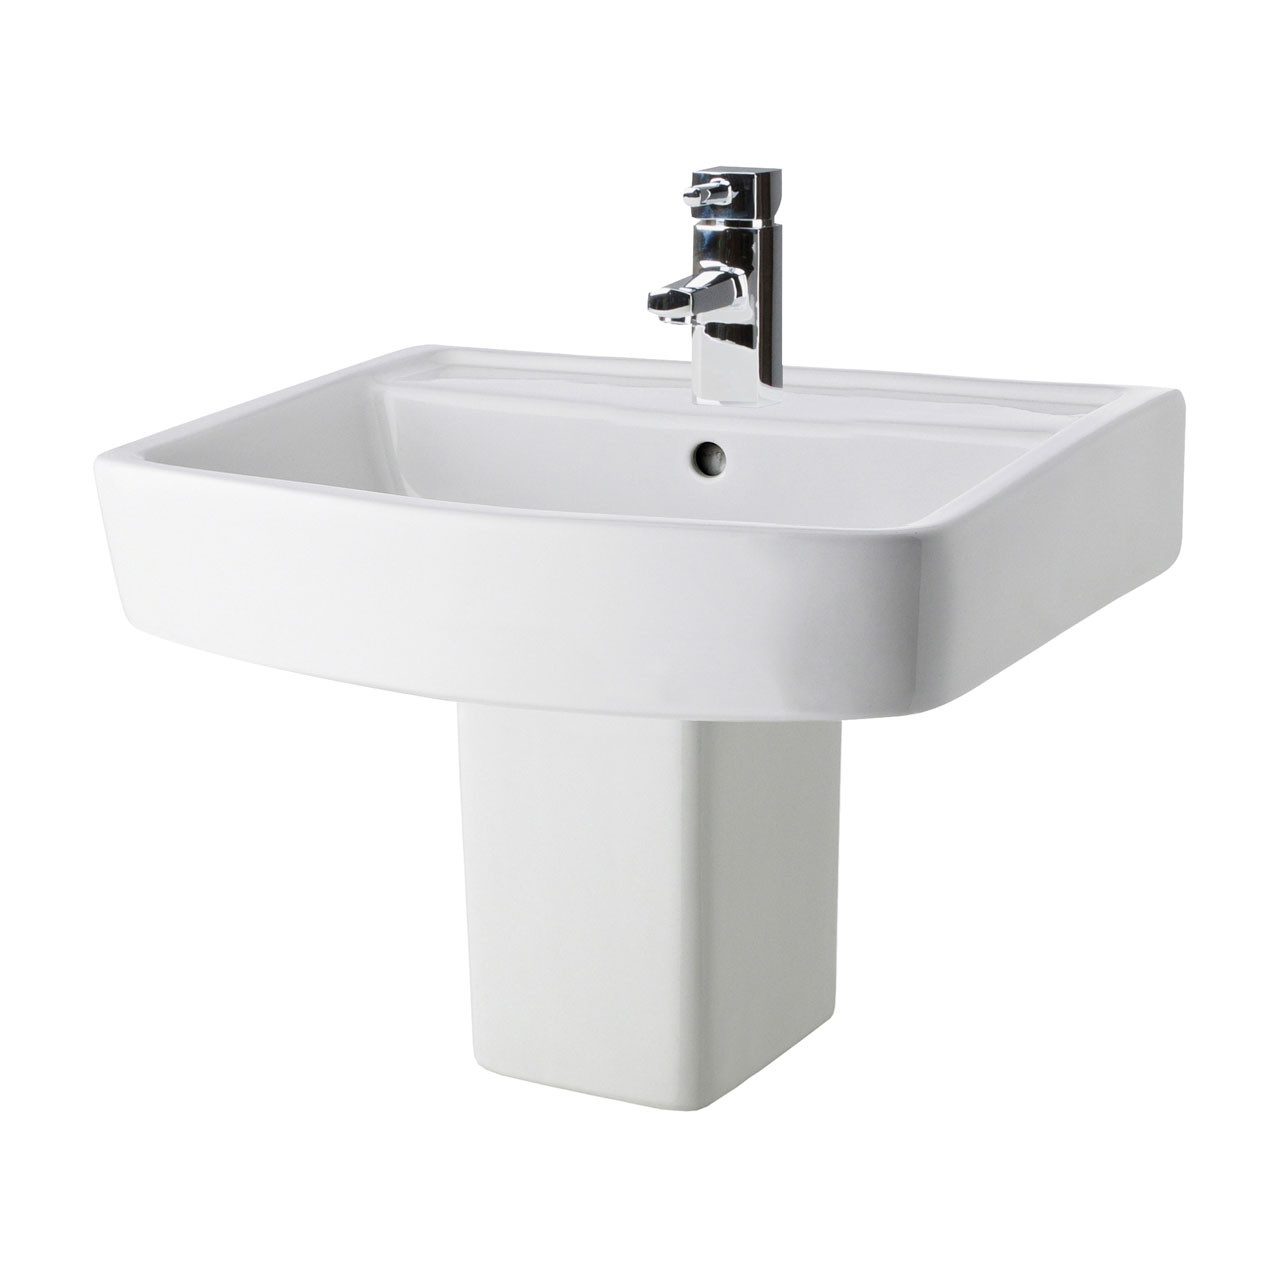 Premier Bliss 520mm Basin with 1 Tap Hole and Semi Pedestal - CBL011